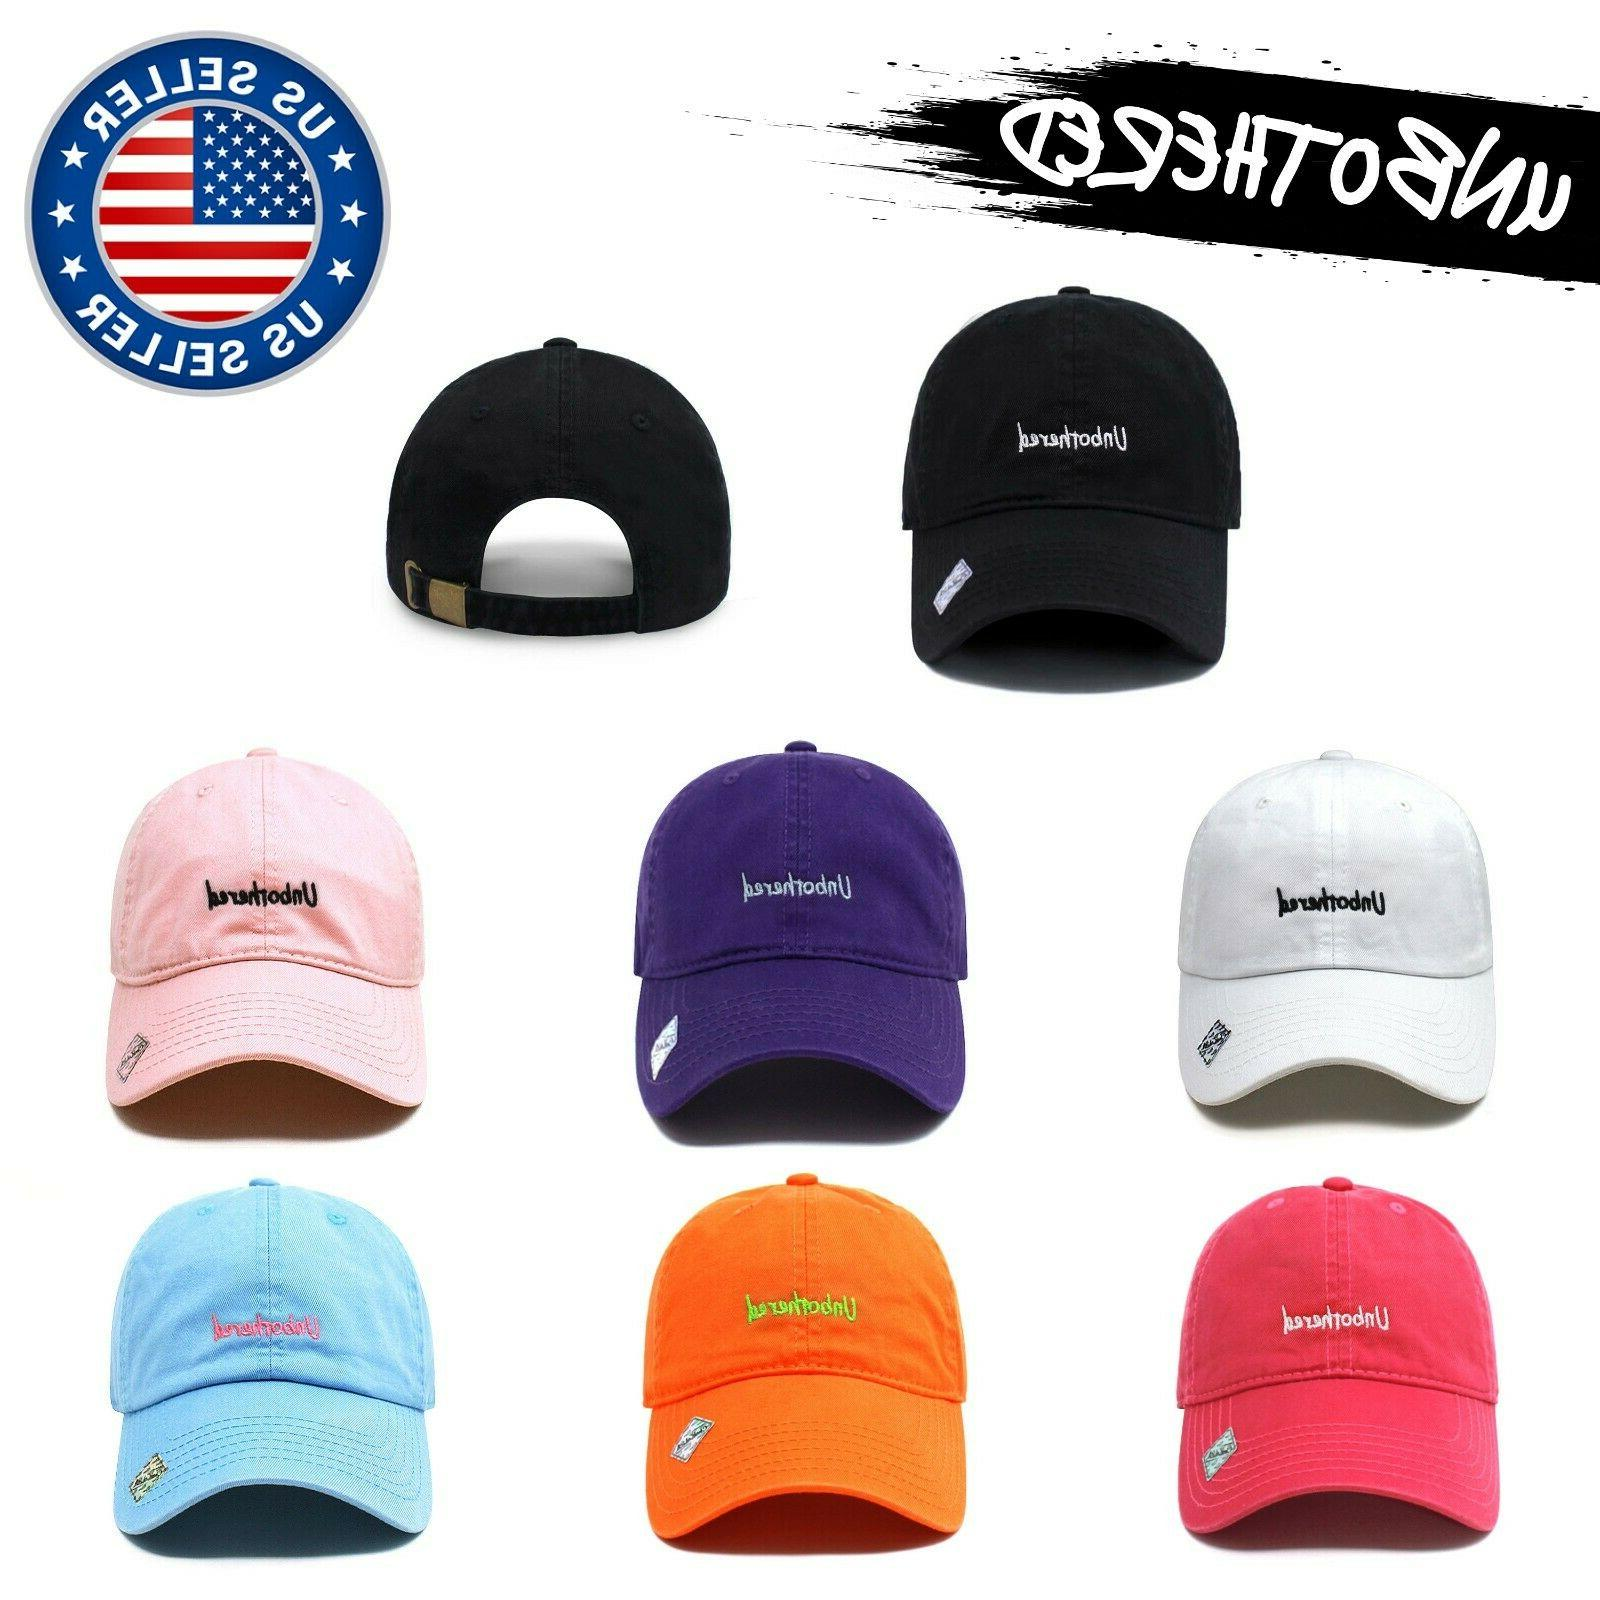 unbothered dad hat cotton baseball cap polo